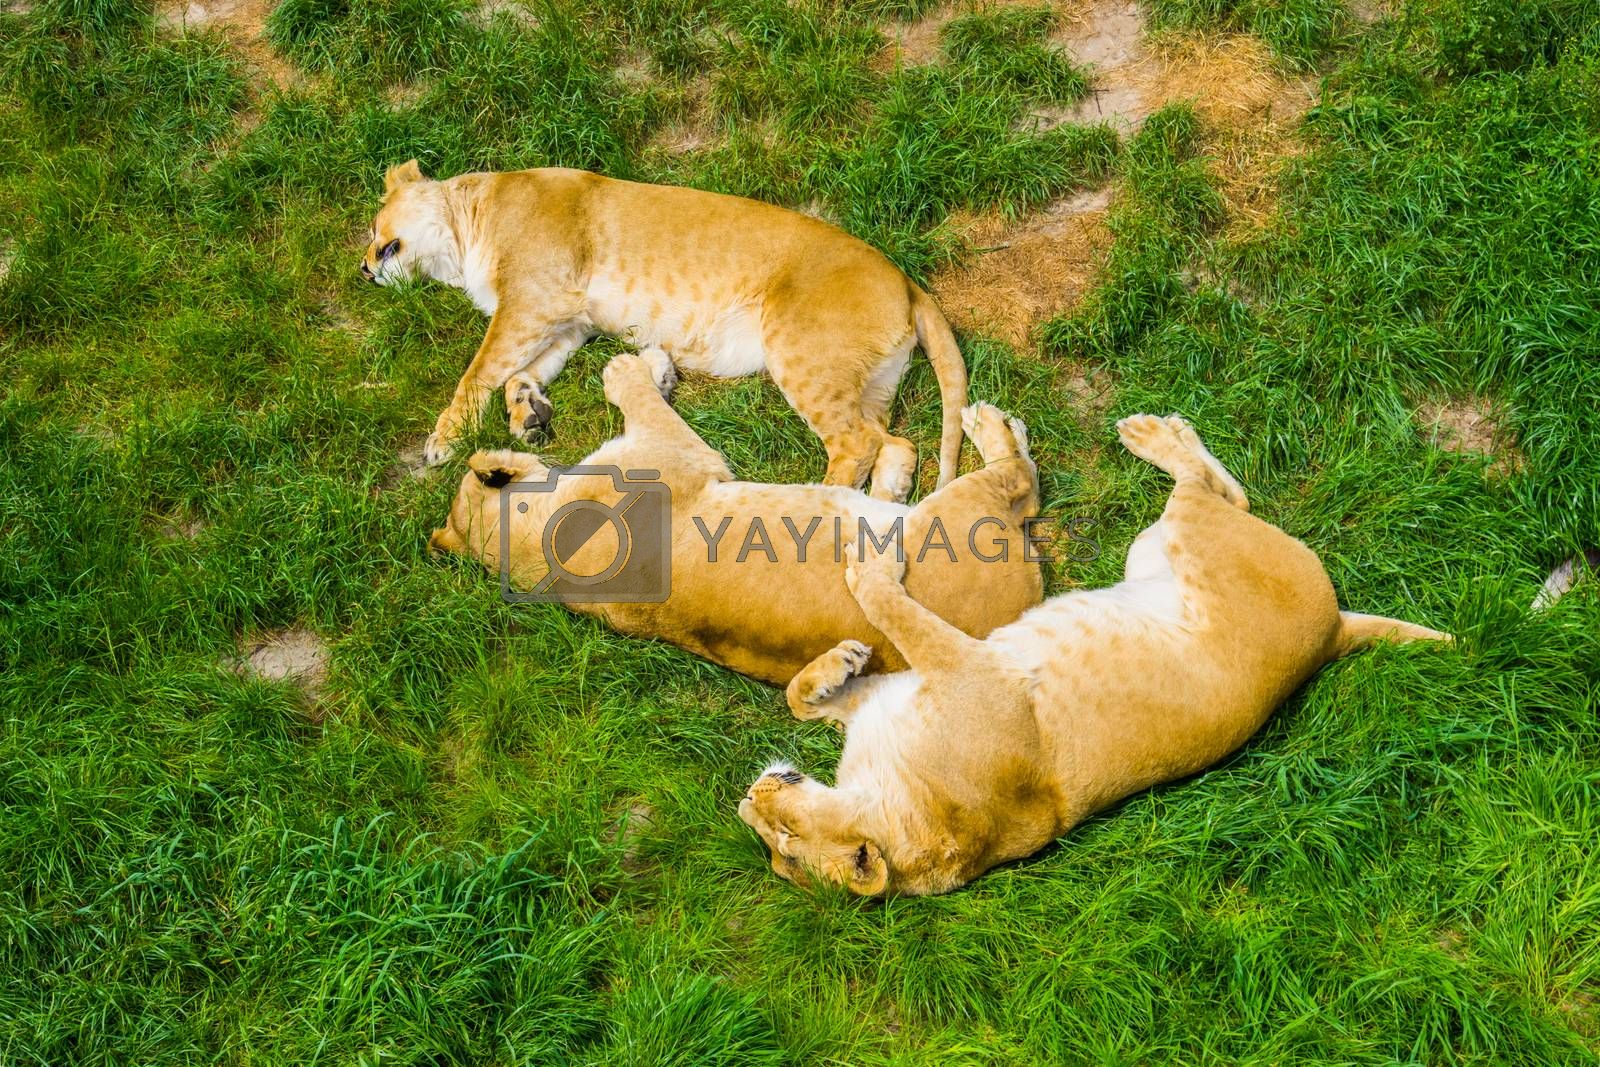 group of female lions sleeping close together in the grass, social lion behavior, Vulnerable animal specie from Africa